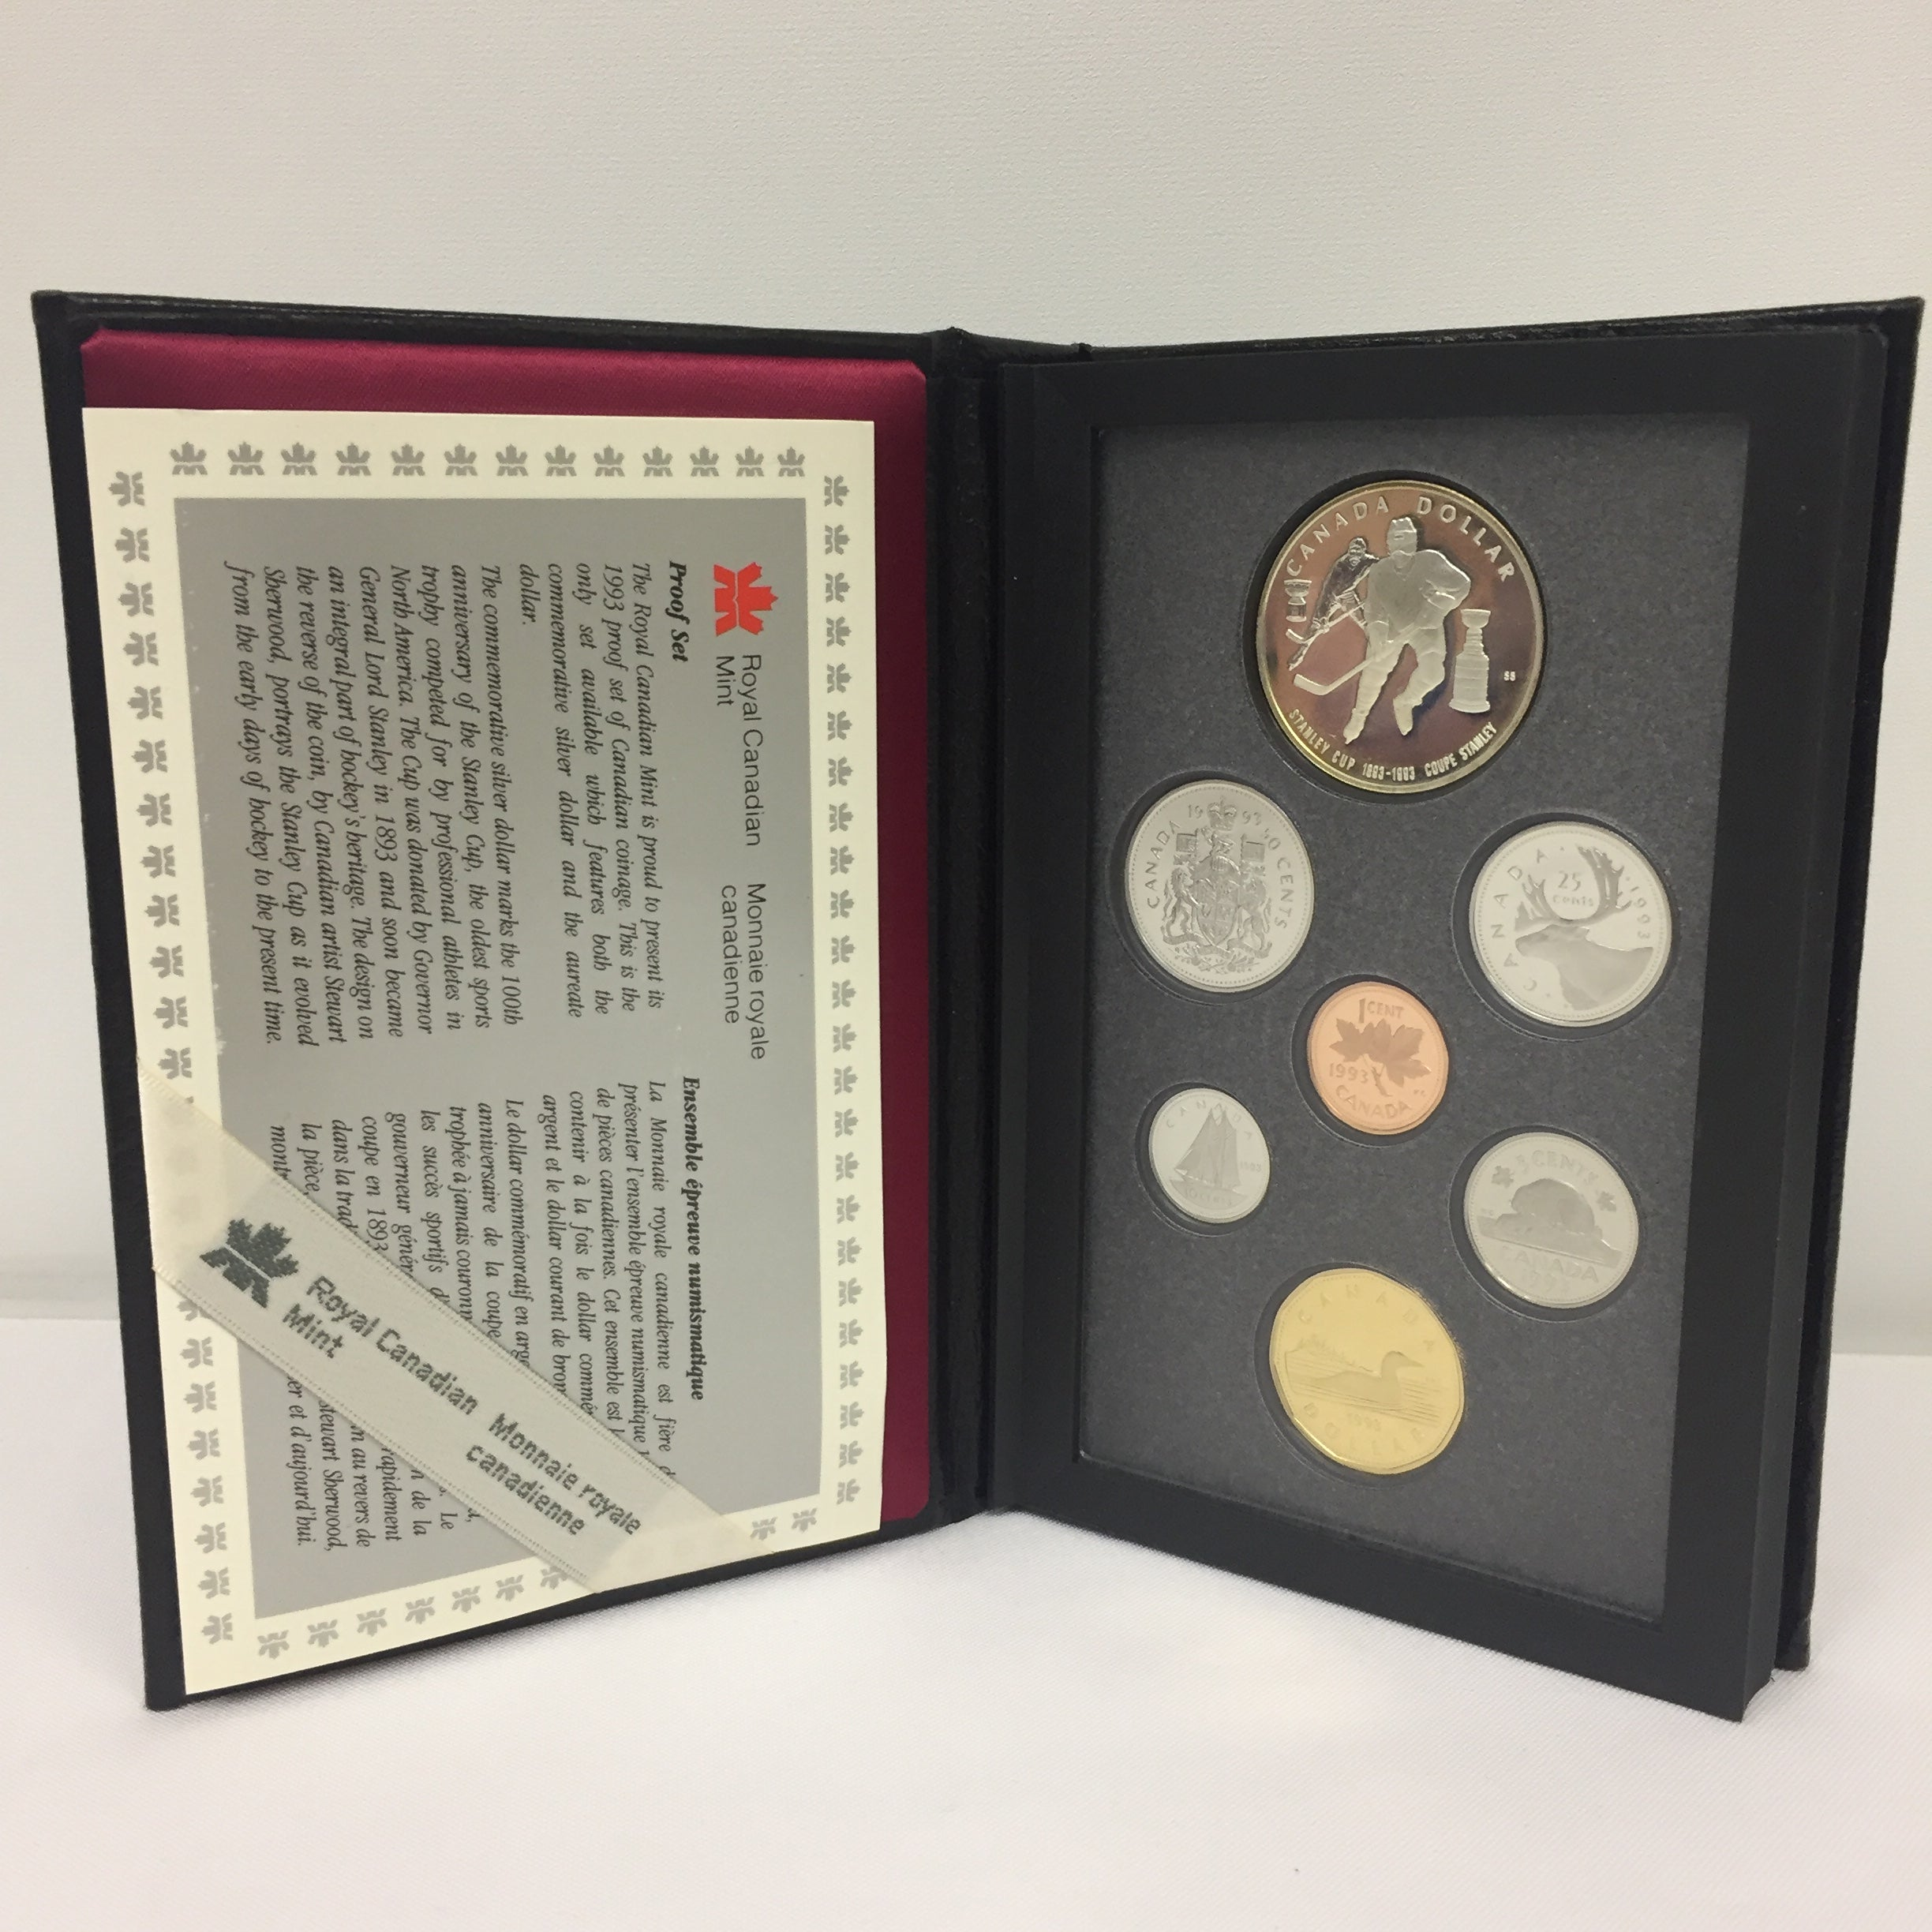 1993 Proof Coin Set of the Stanley Cup's 100th Anniversary